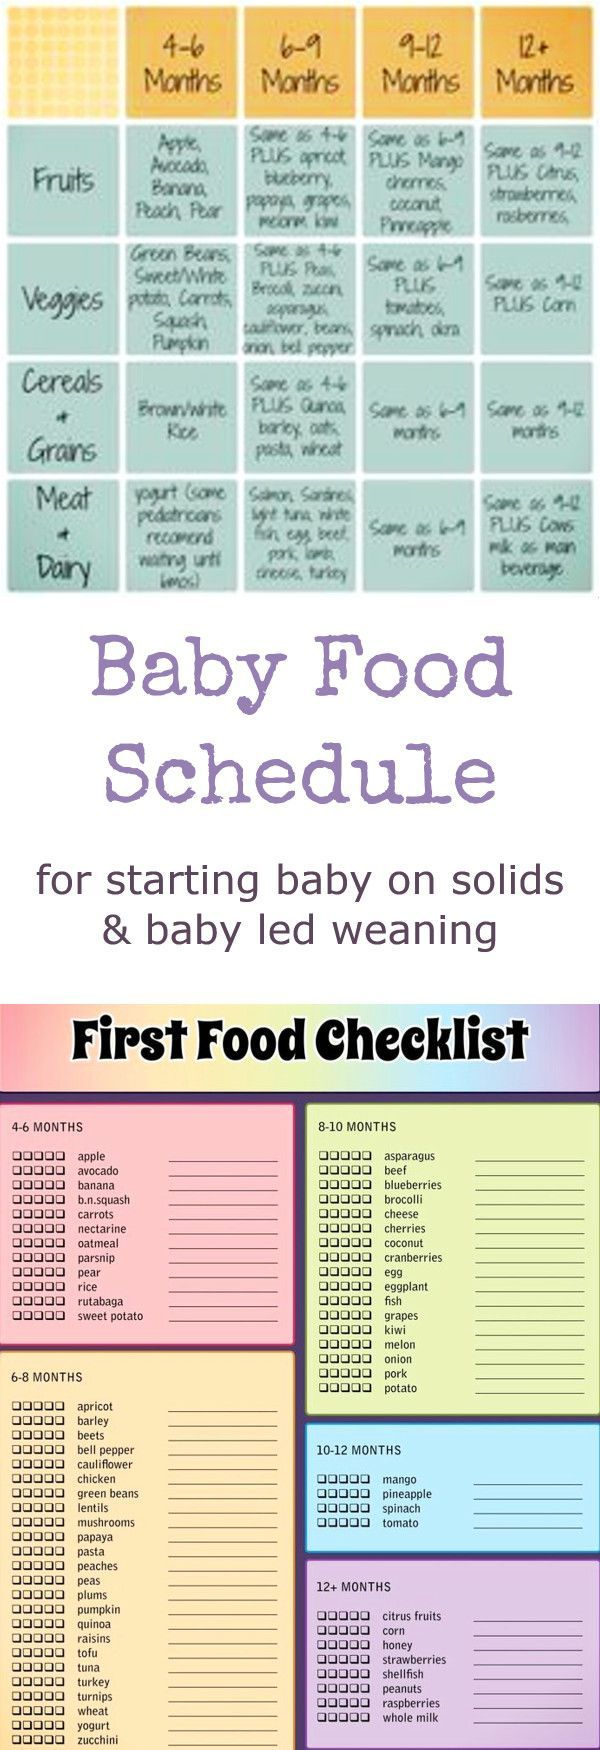 Baby Led Weaning My Experience Tips First Foods And What Works